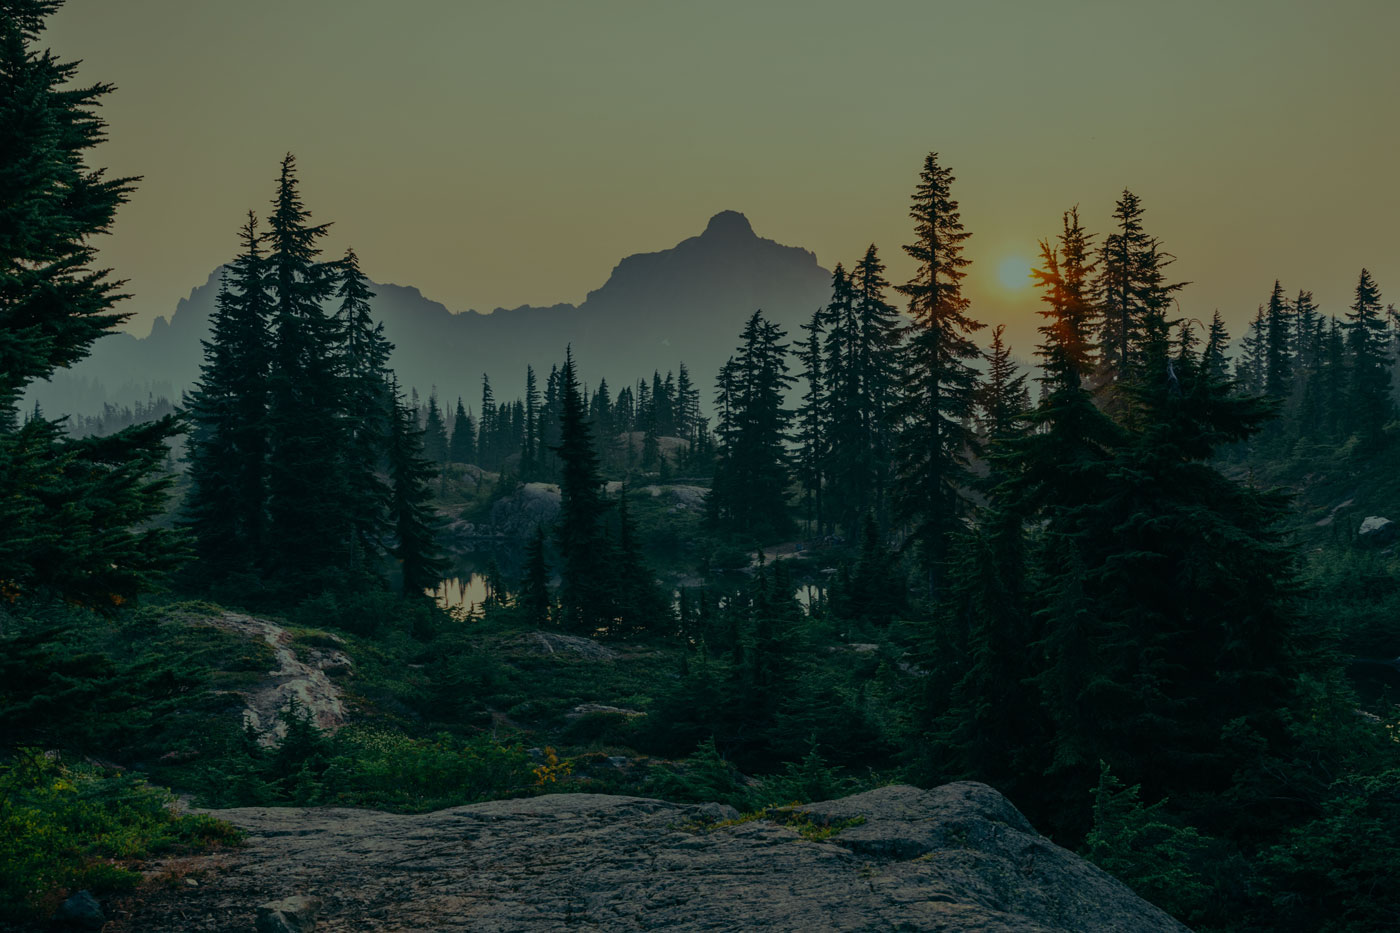 Tree-filled mountainscape at sunset